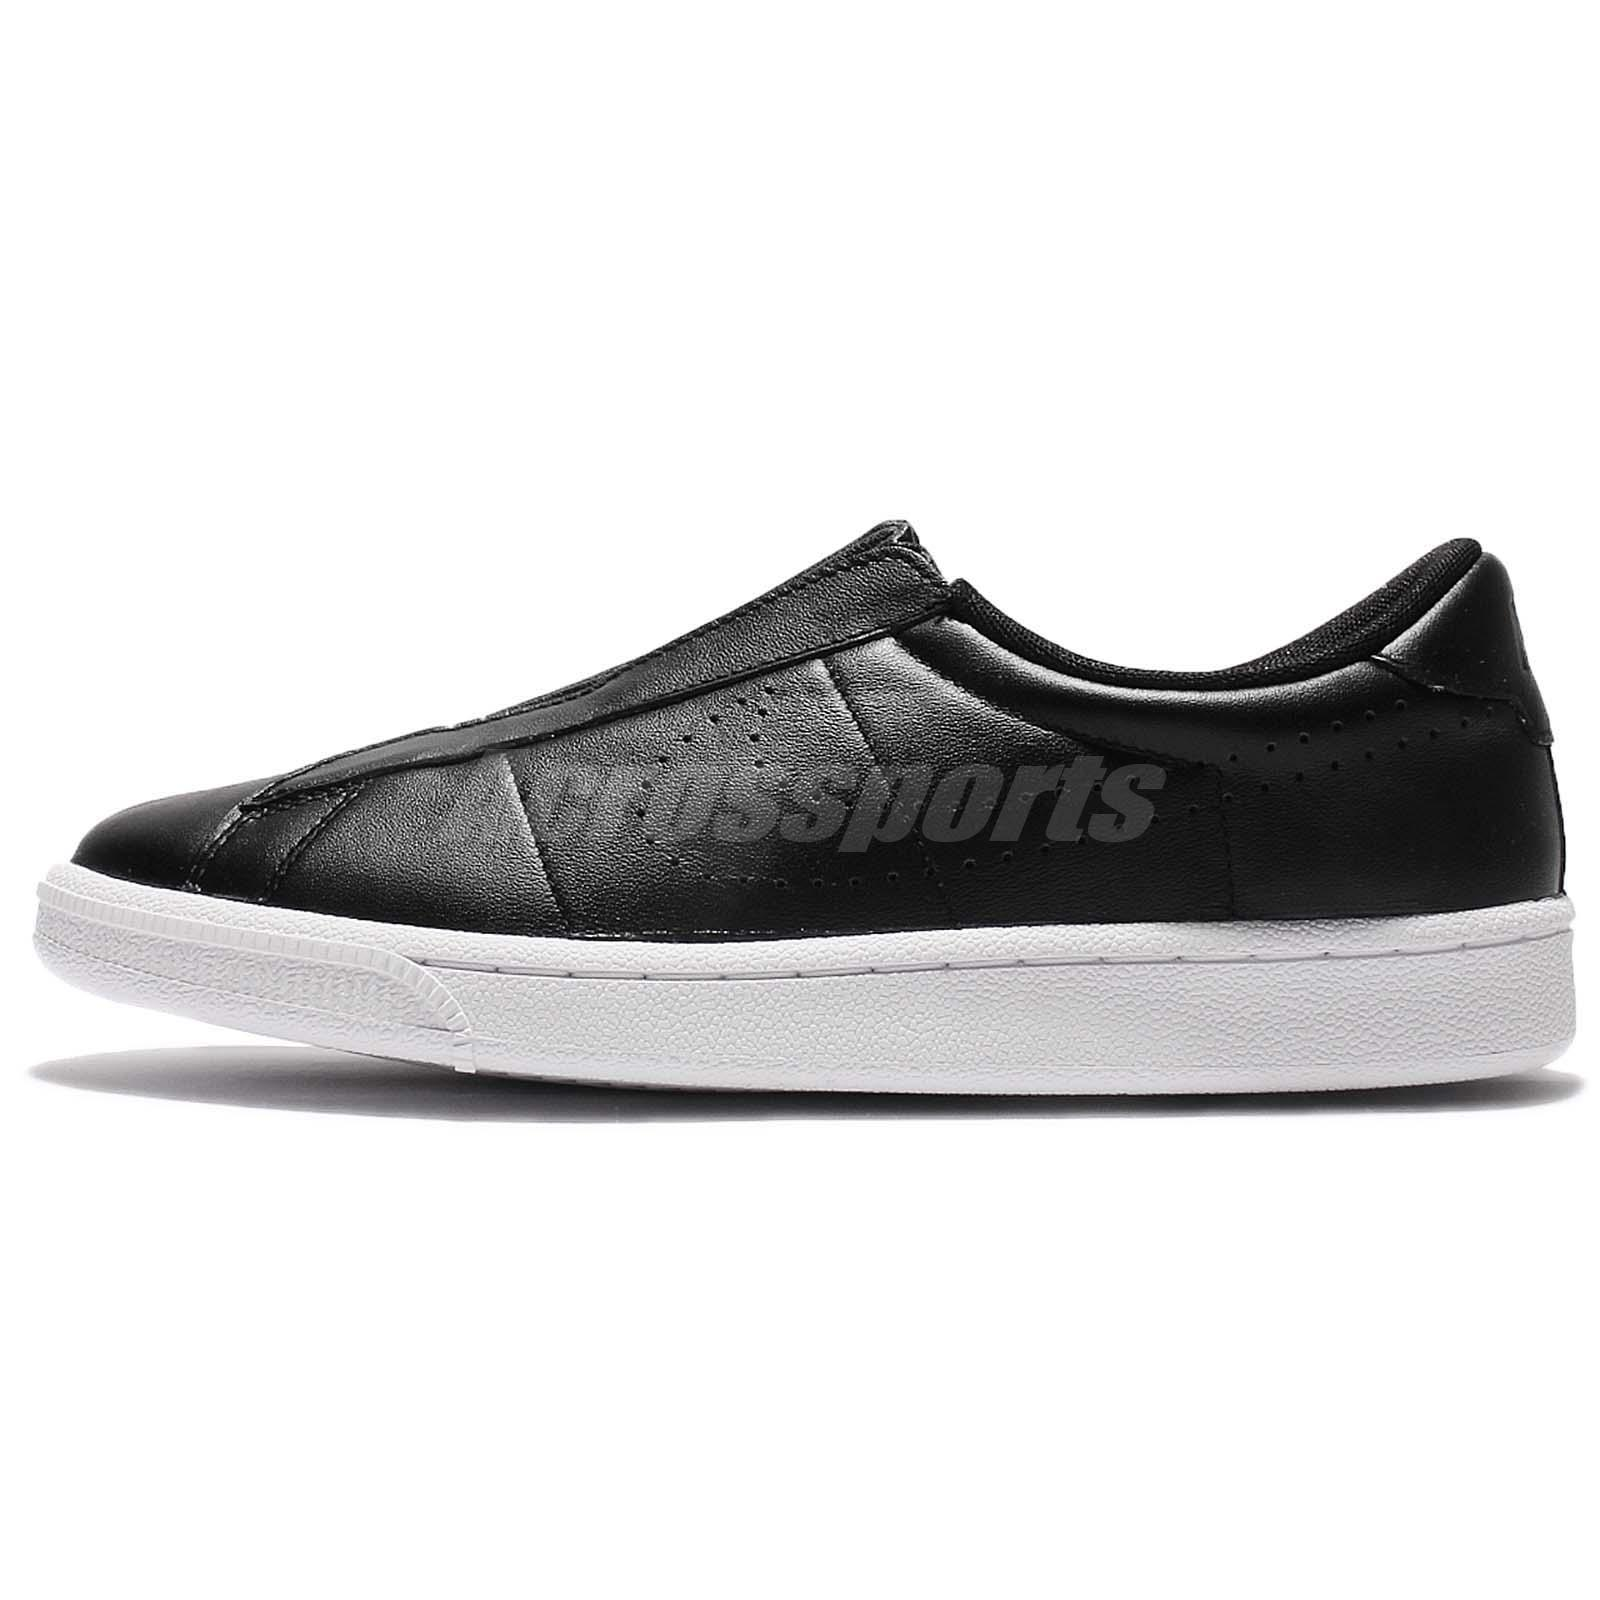 Wmns Nike Tennis Classic Ease Black Leather Women Shoes Slip-On ...